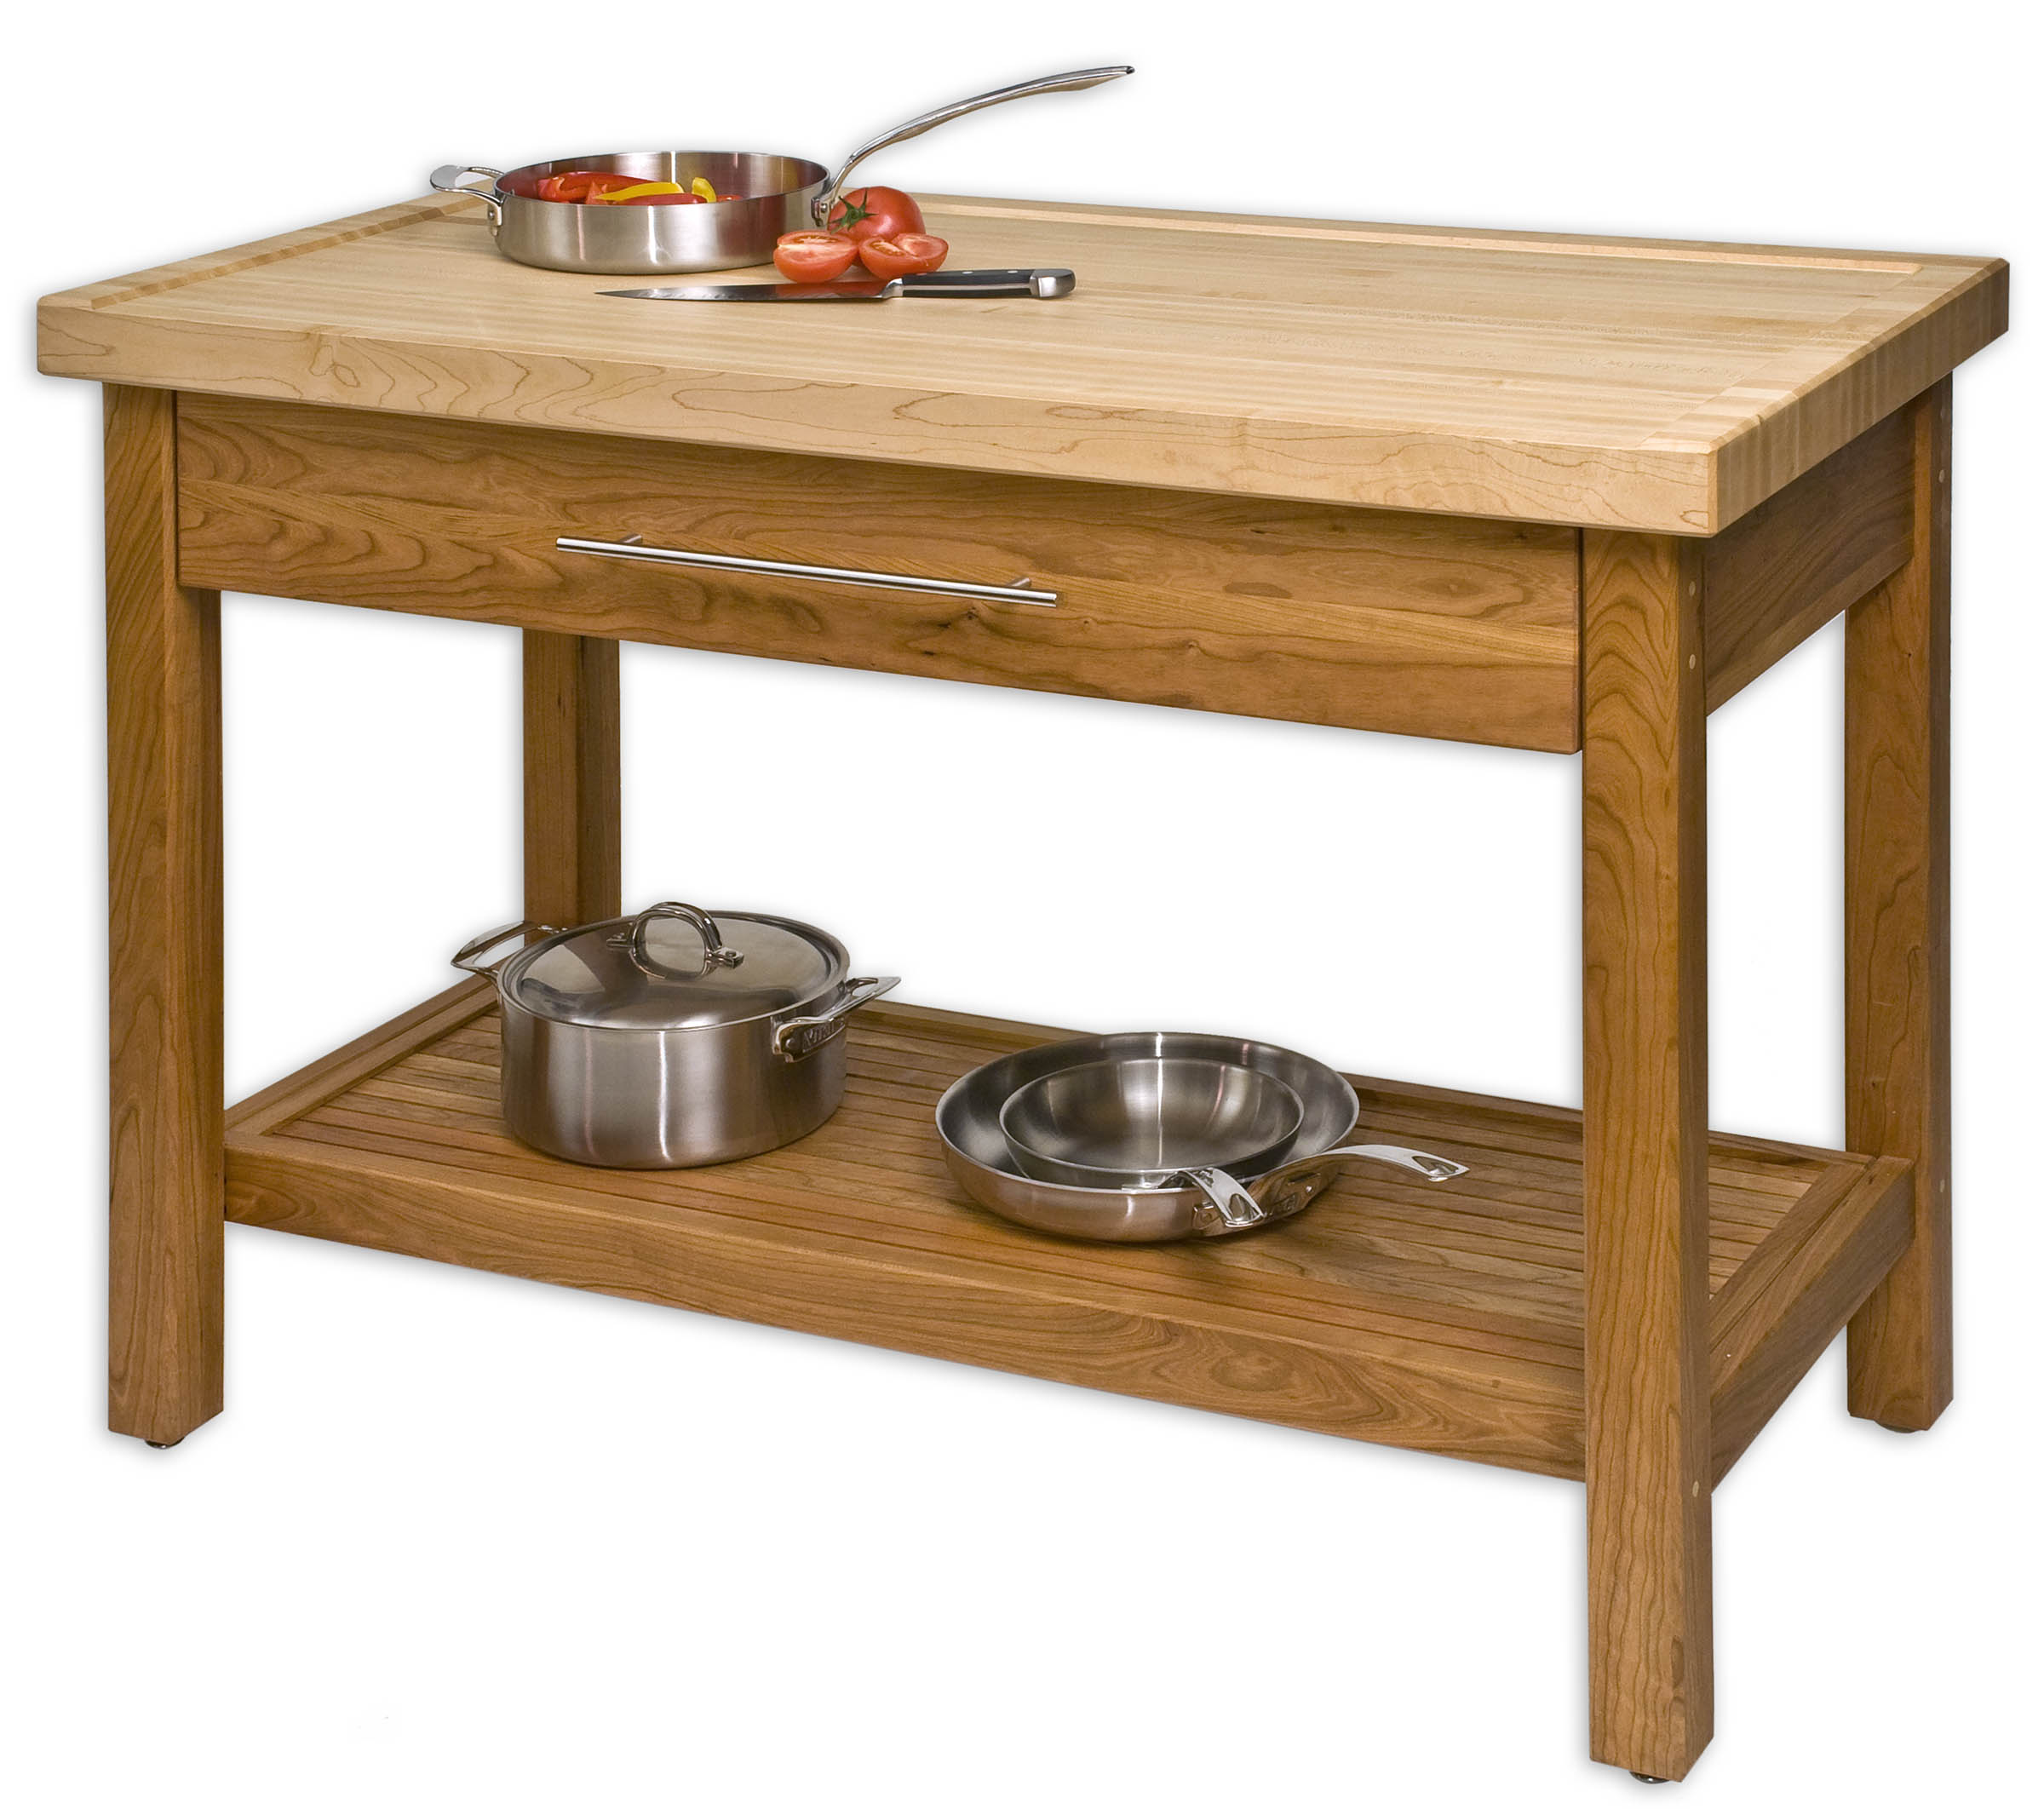 Butcher block table butcher block kitchen tables for Kitchen island bench